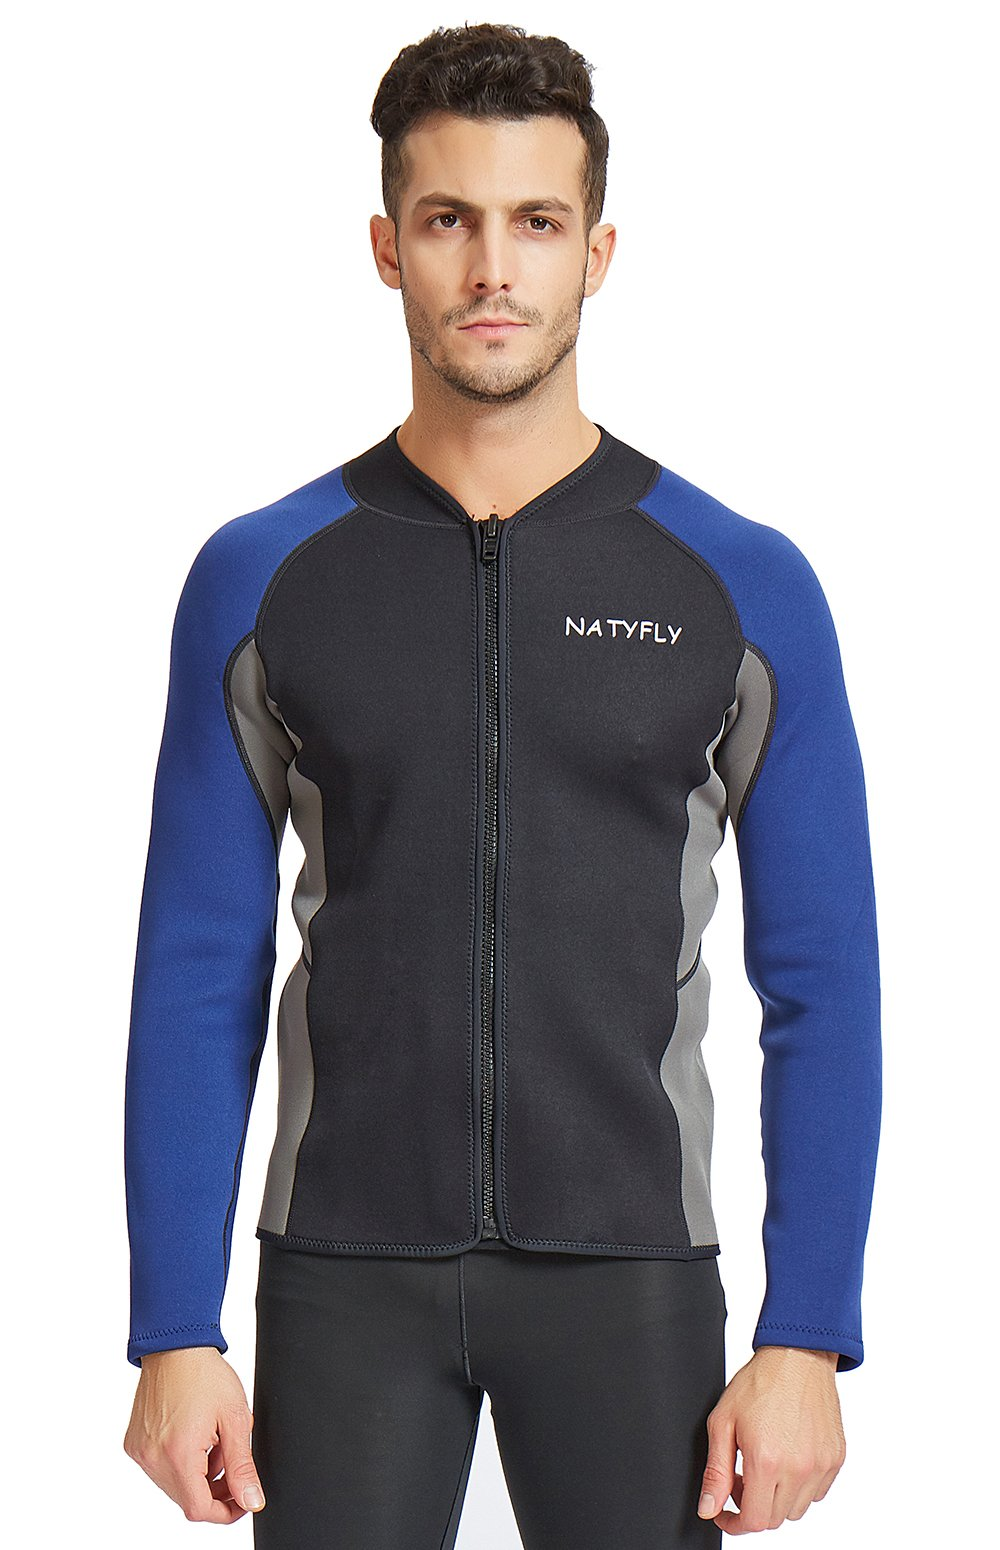 OUTYFUN Mens Wetsuit Jacket,2mm Neoprene Wetsuits Top for Men Long Sleeve Front Zip Wet Suit (Blue, Medium) by OUTYFUN